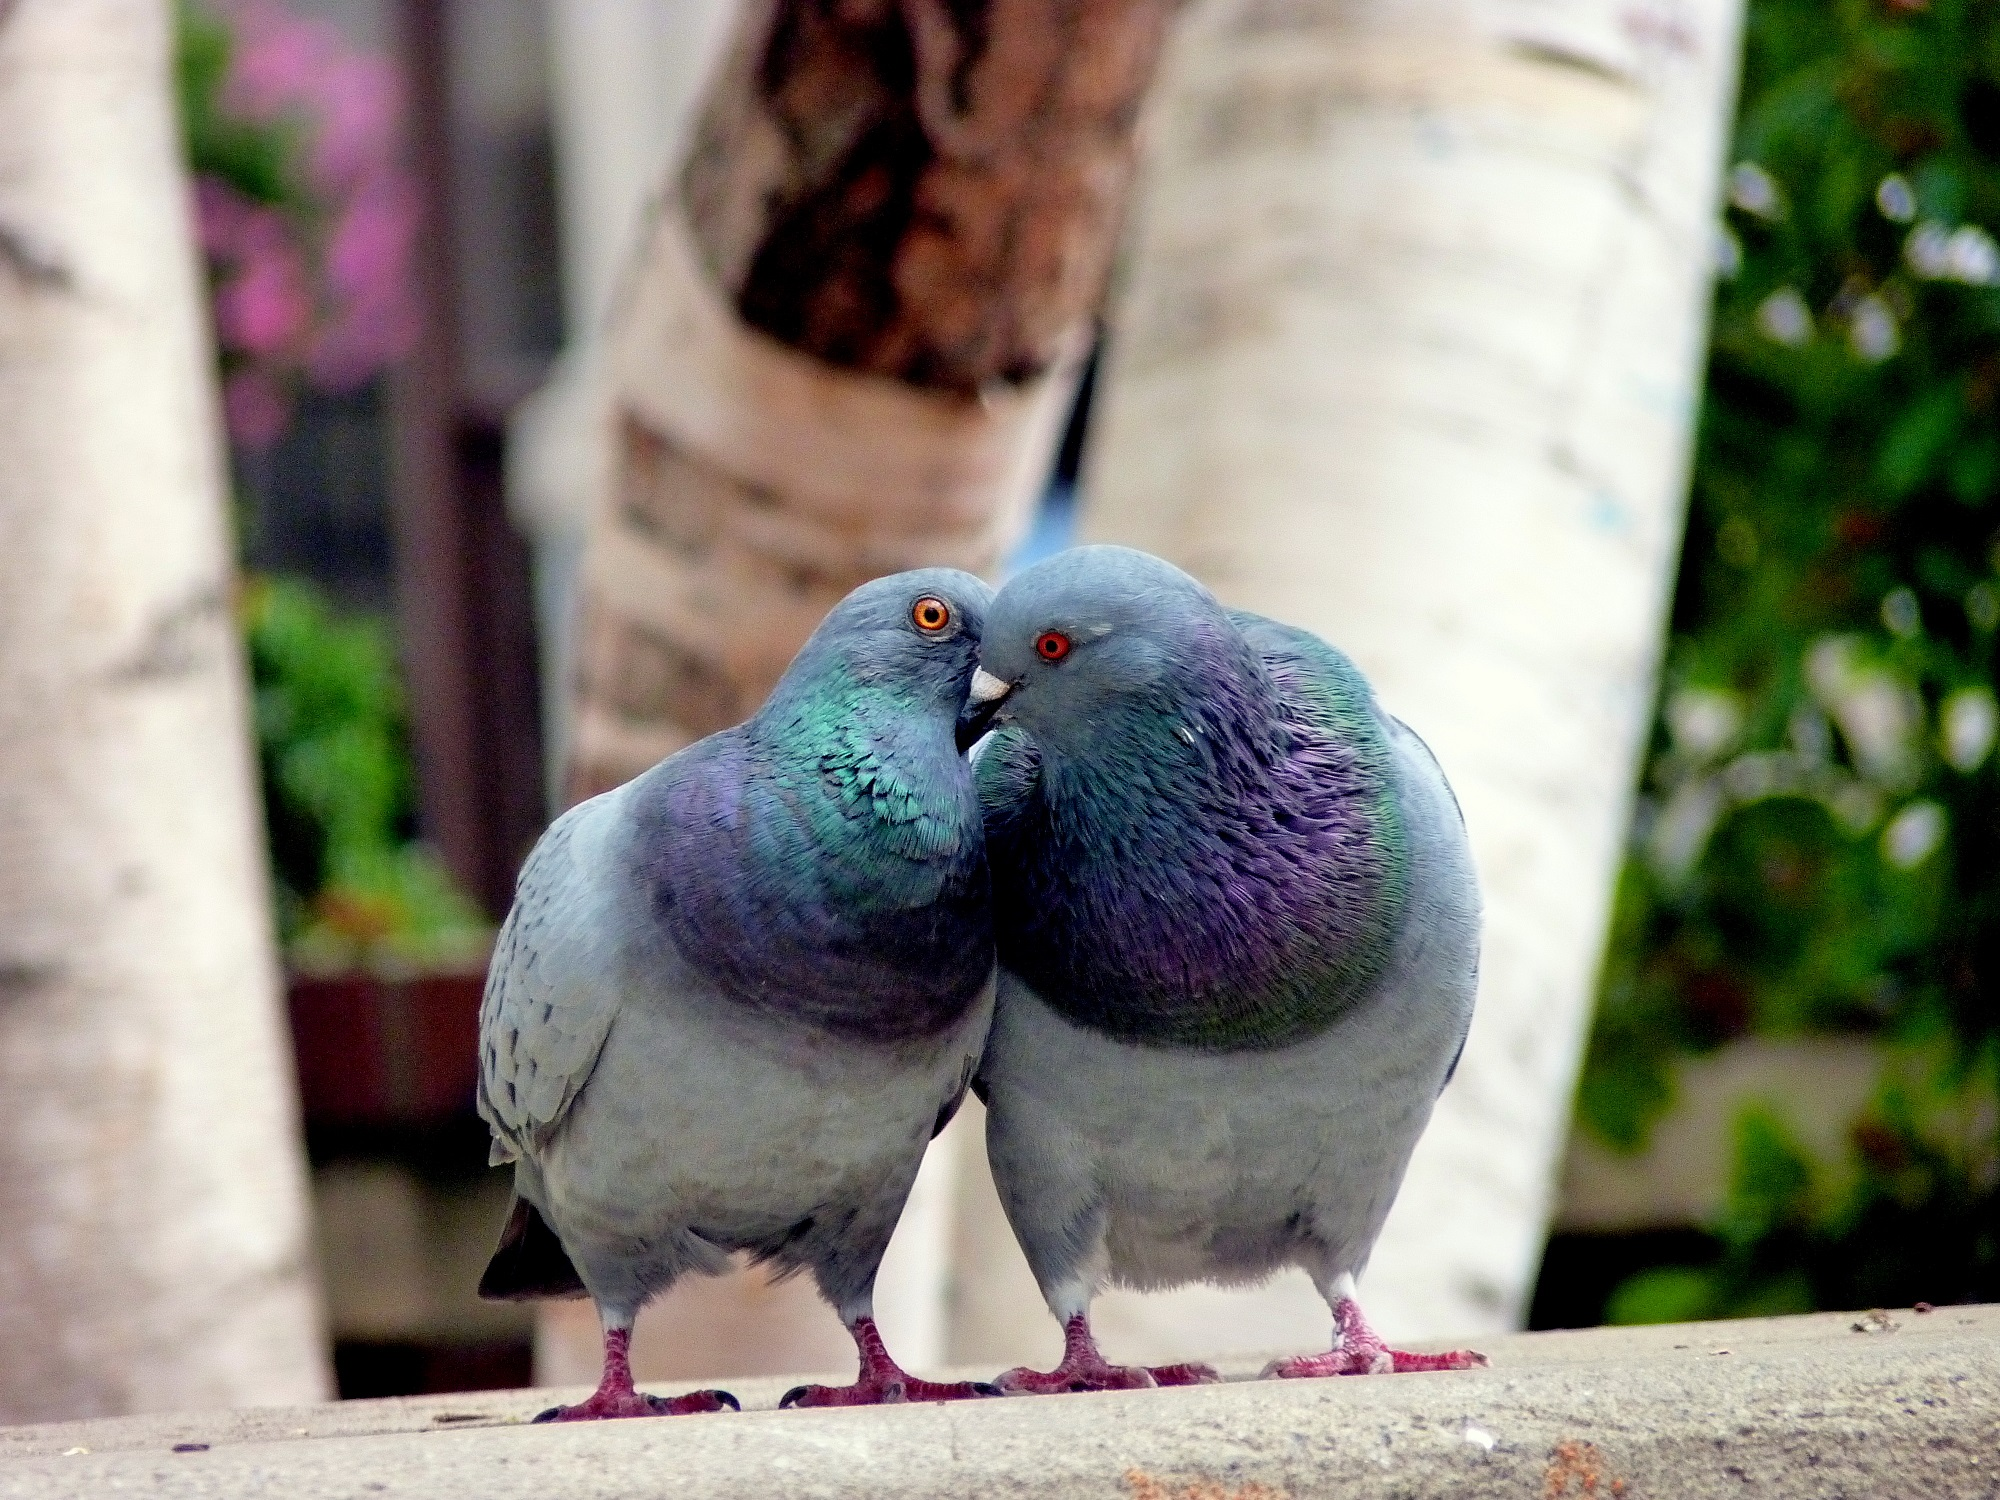 Birds of a feather dating apps